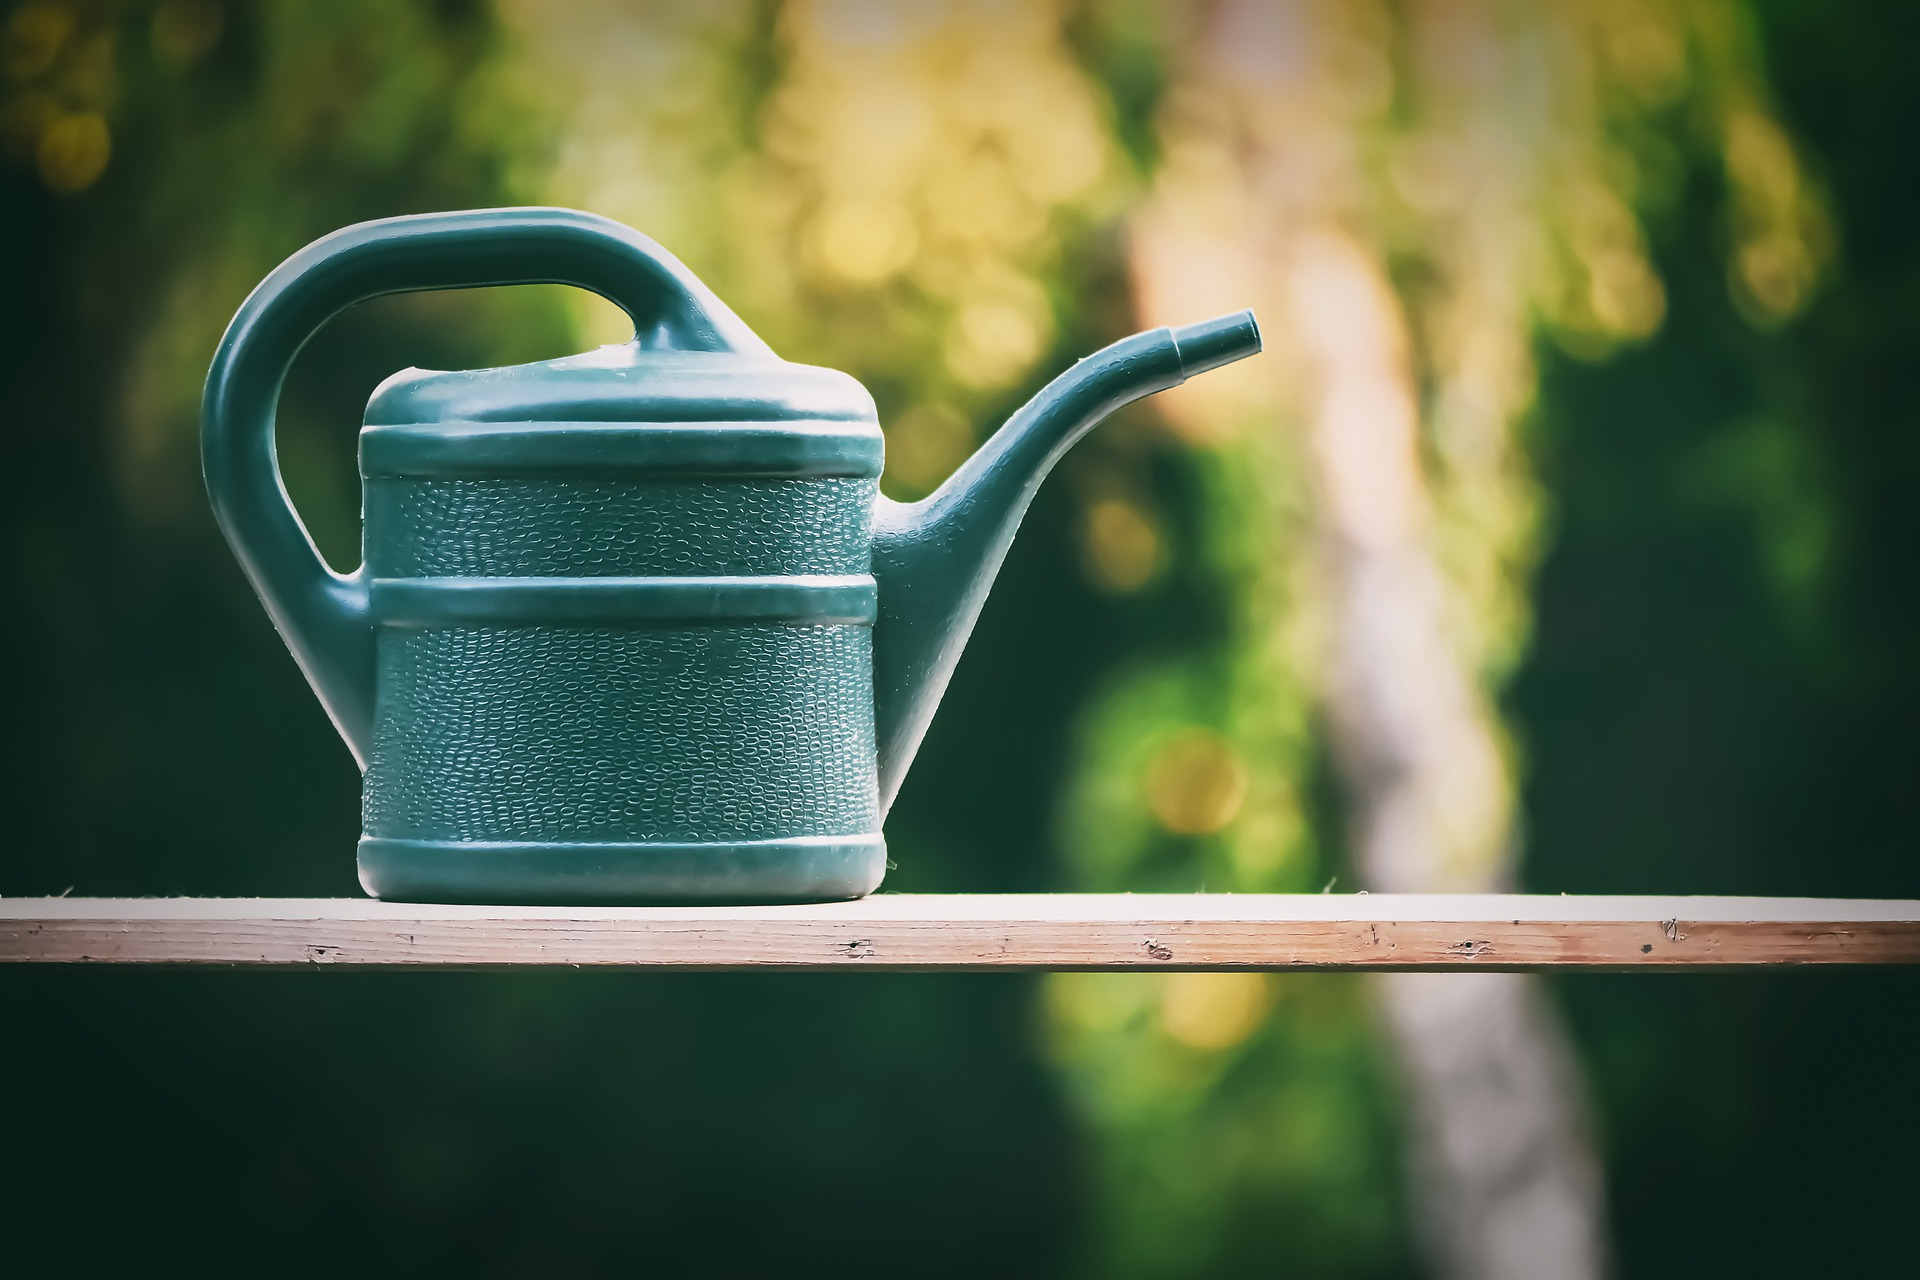 watering-can-5202988_1920